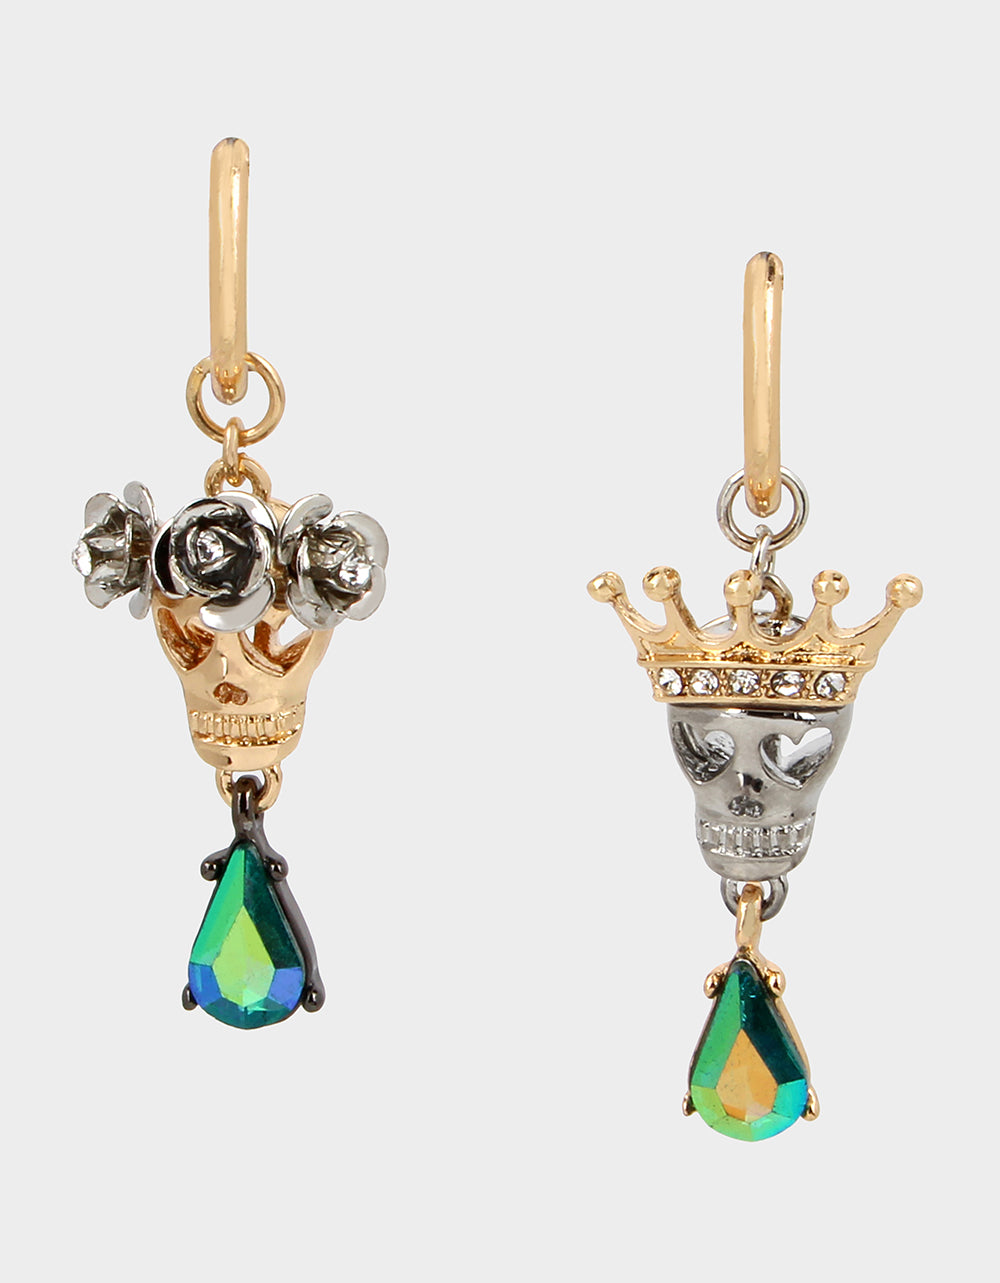 CREEP IT REAL KING QUEEN EARRINGS TEAL - JEWELRY - Betsey Johnson